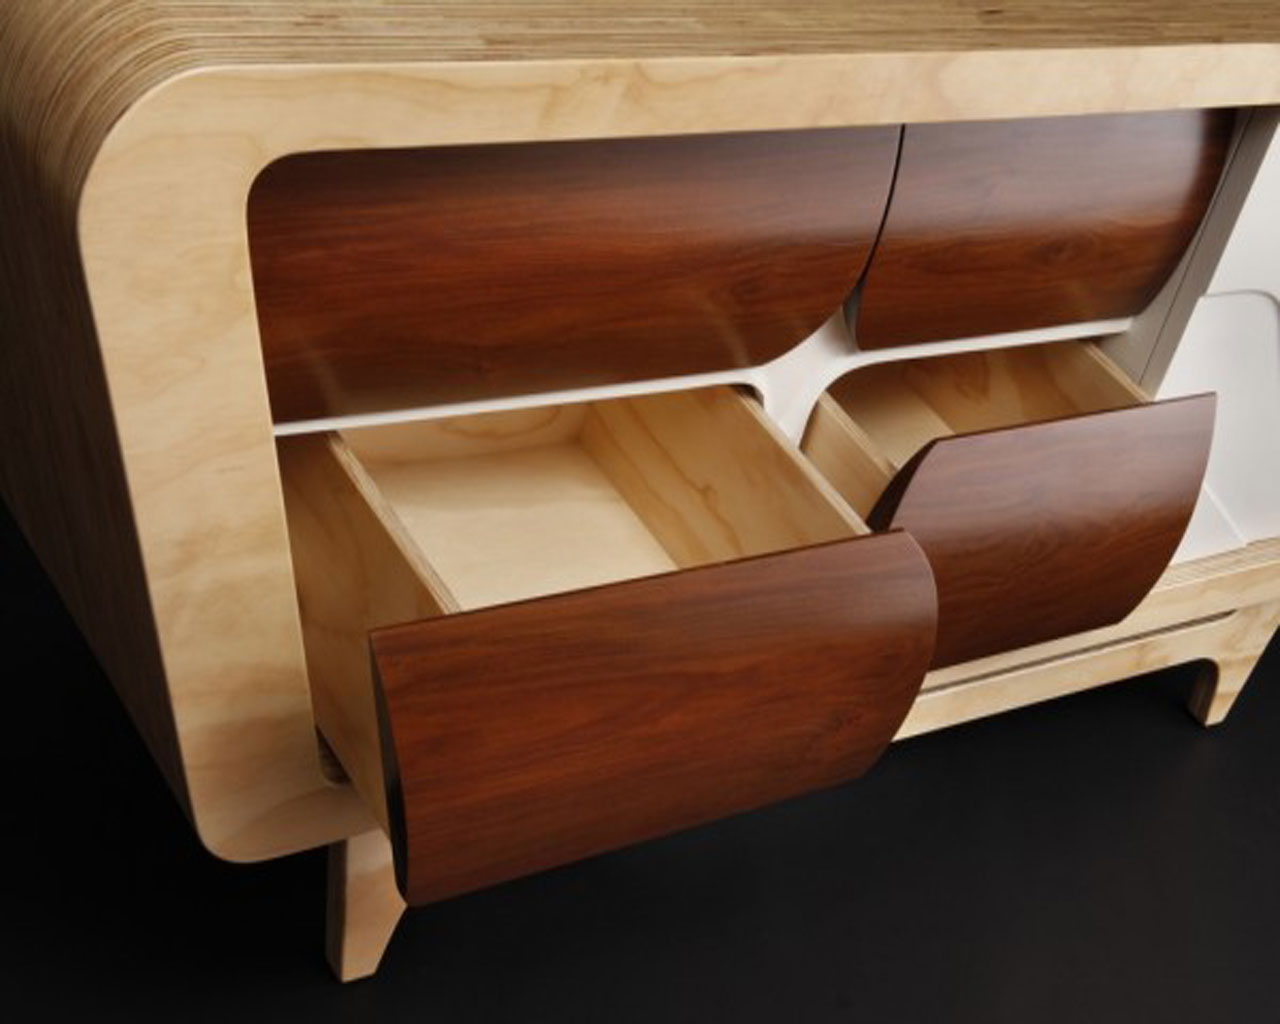 Contemporary furniture designs ideas for Furniture furniture